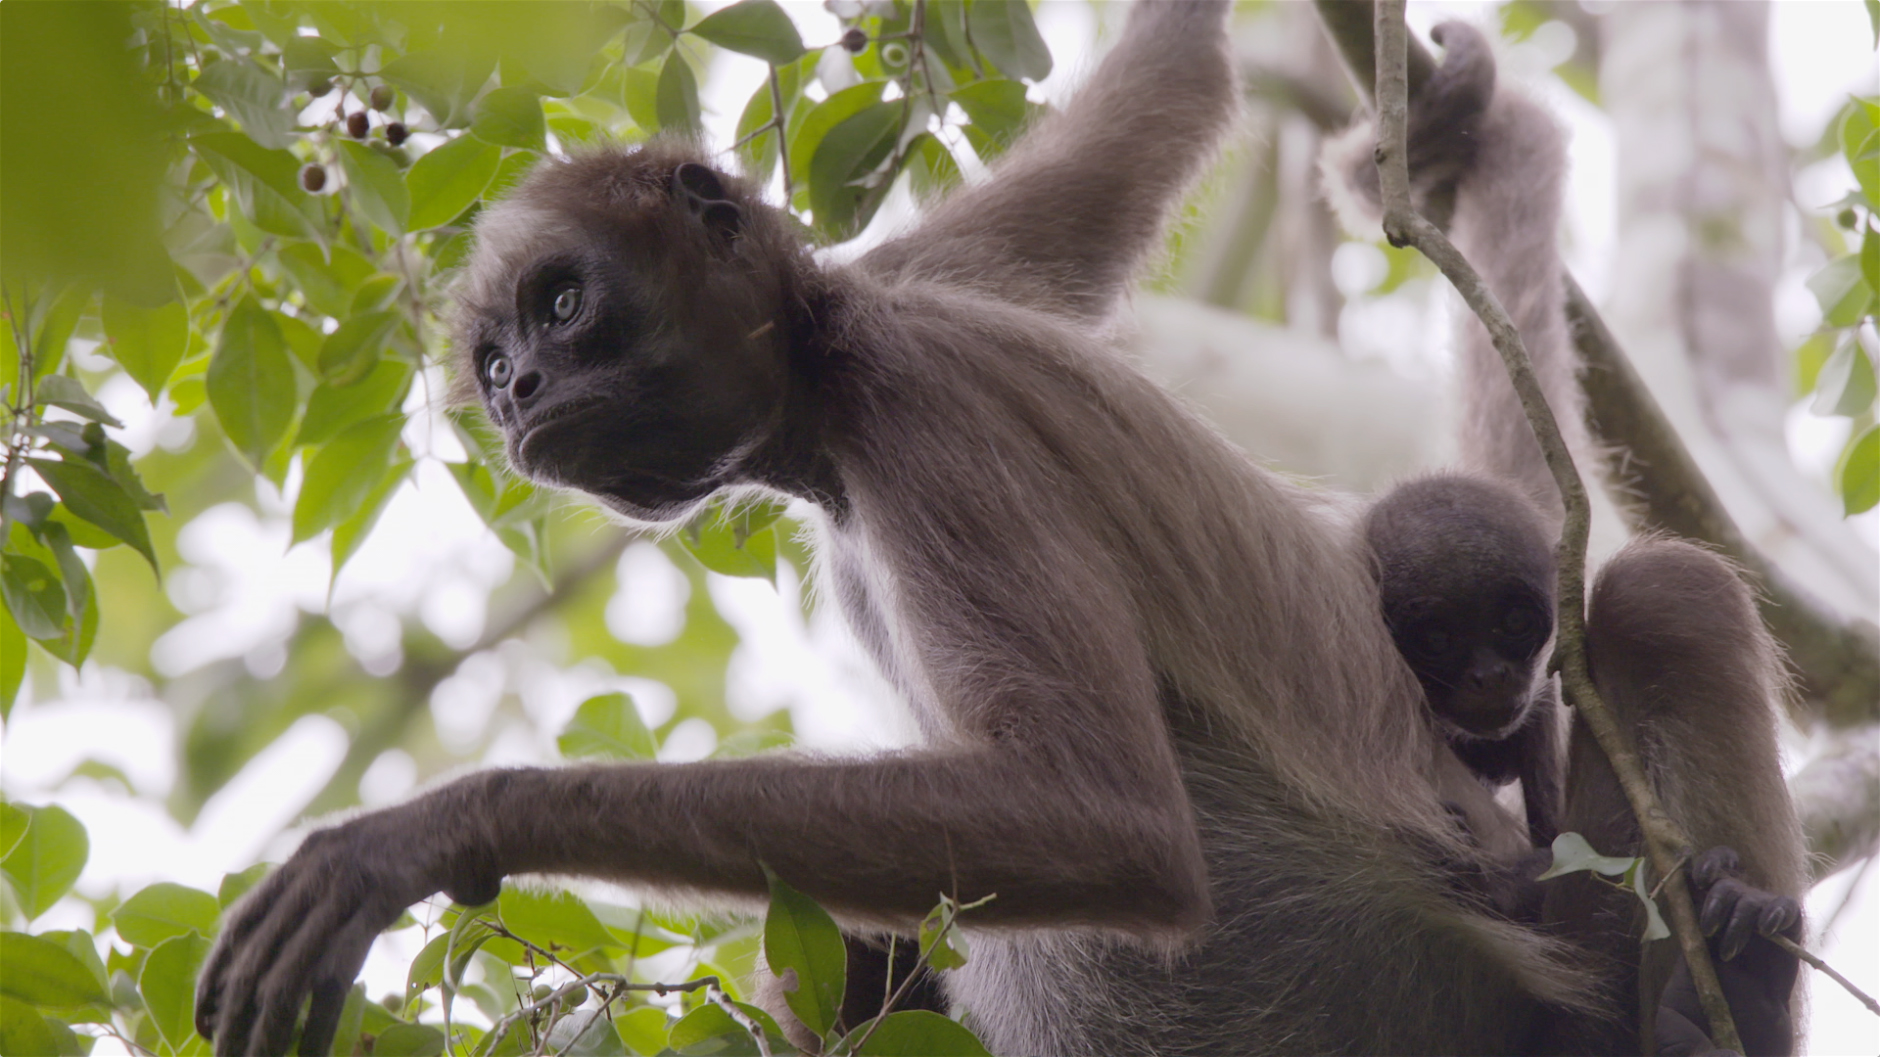 Cute Baby Feet Wallpaper Swing Through The Trees With Amazing Spider Monkeys